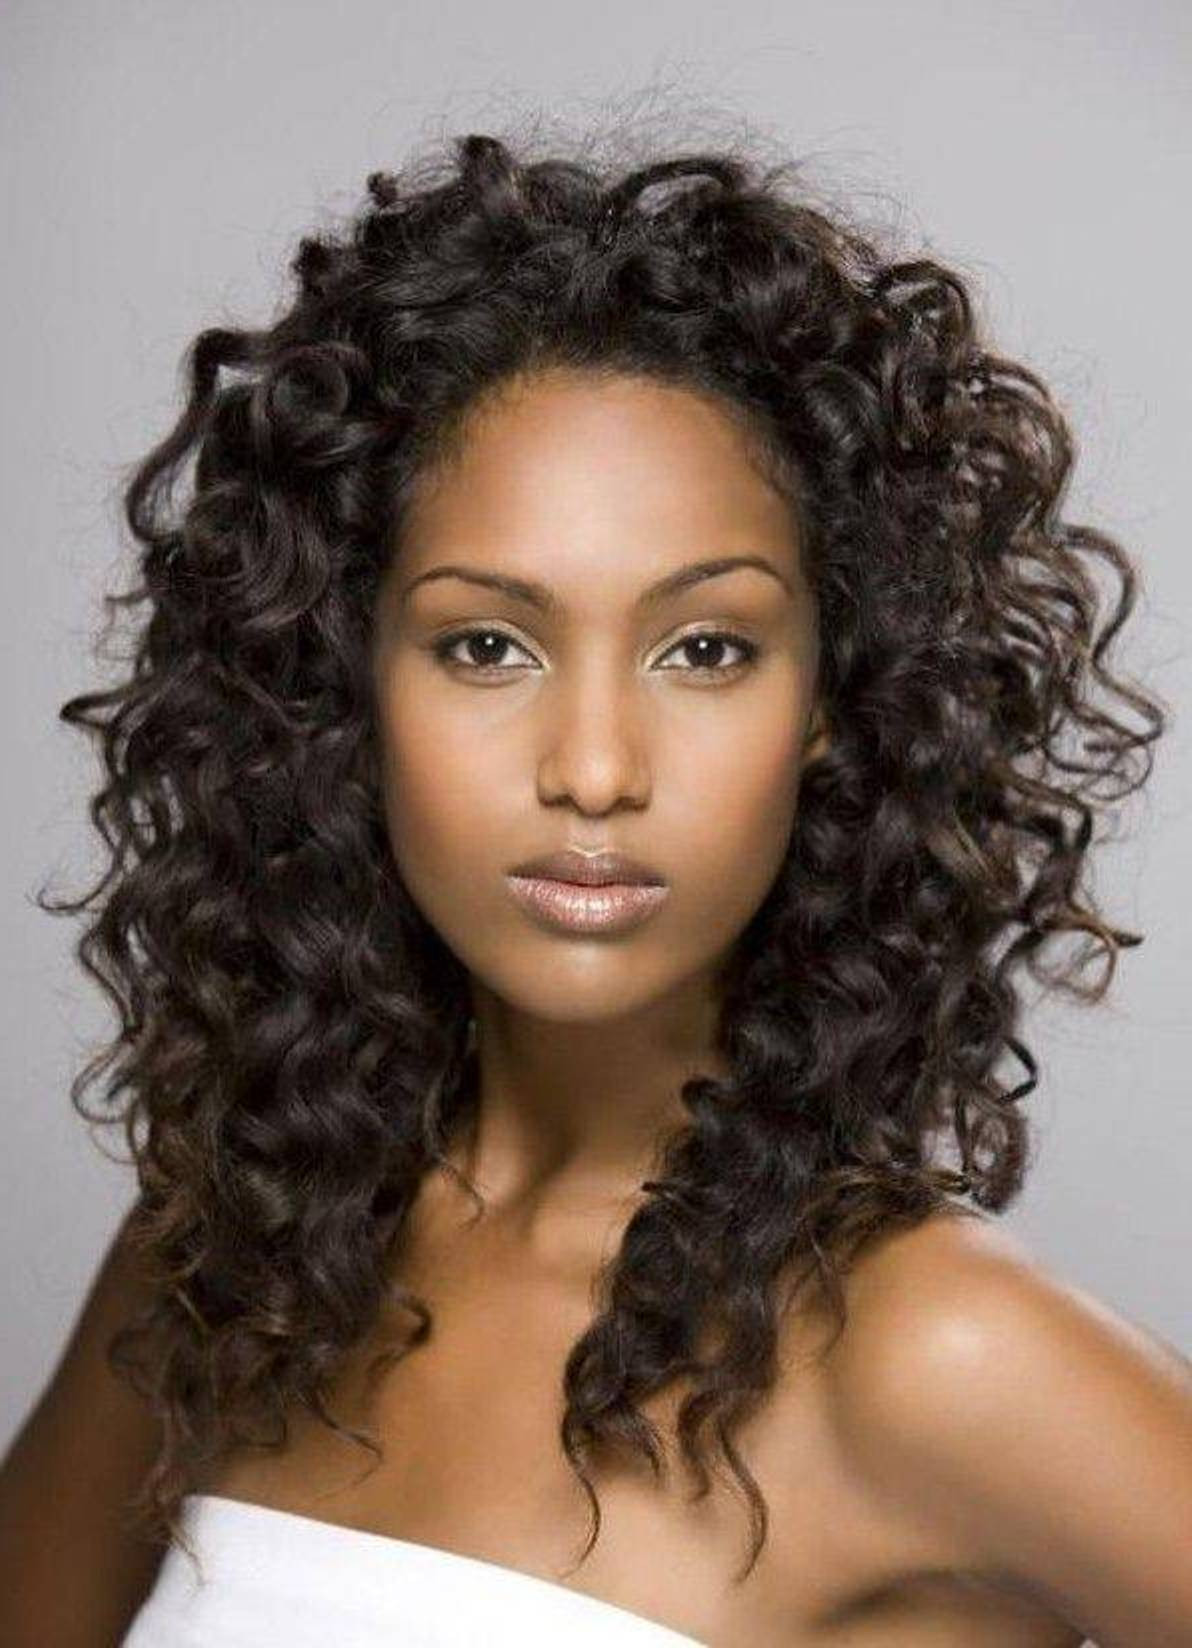 Hairstyles Black Women  50 Hairstyles Ideas for Black Women to Try This Year MagMent